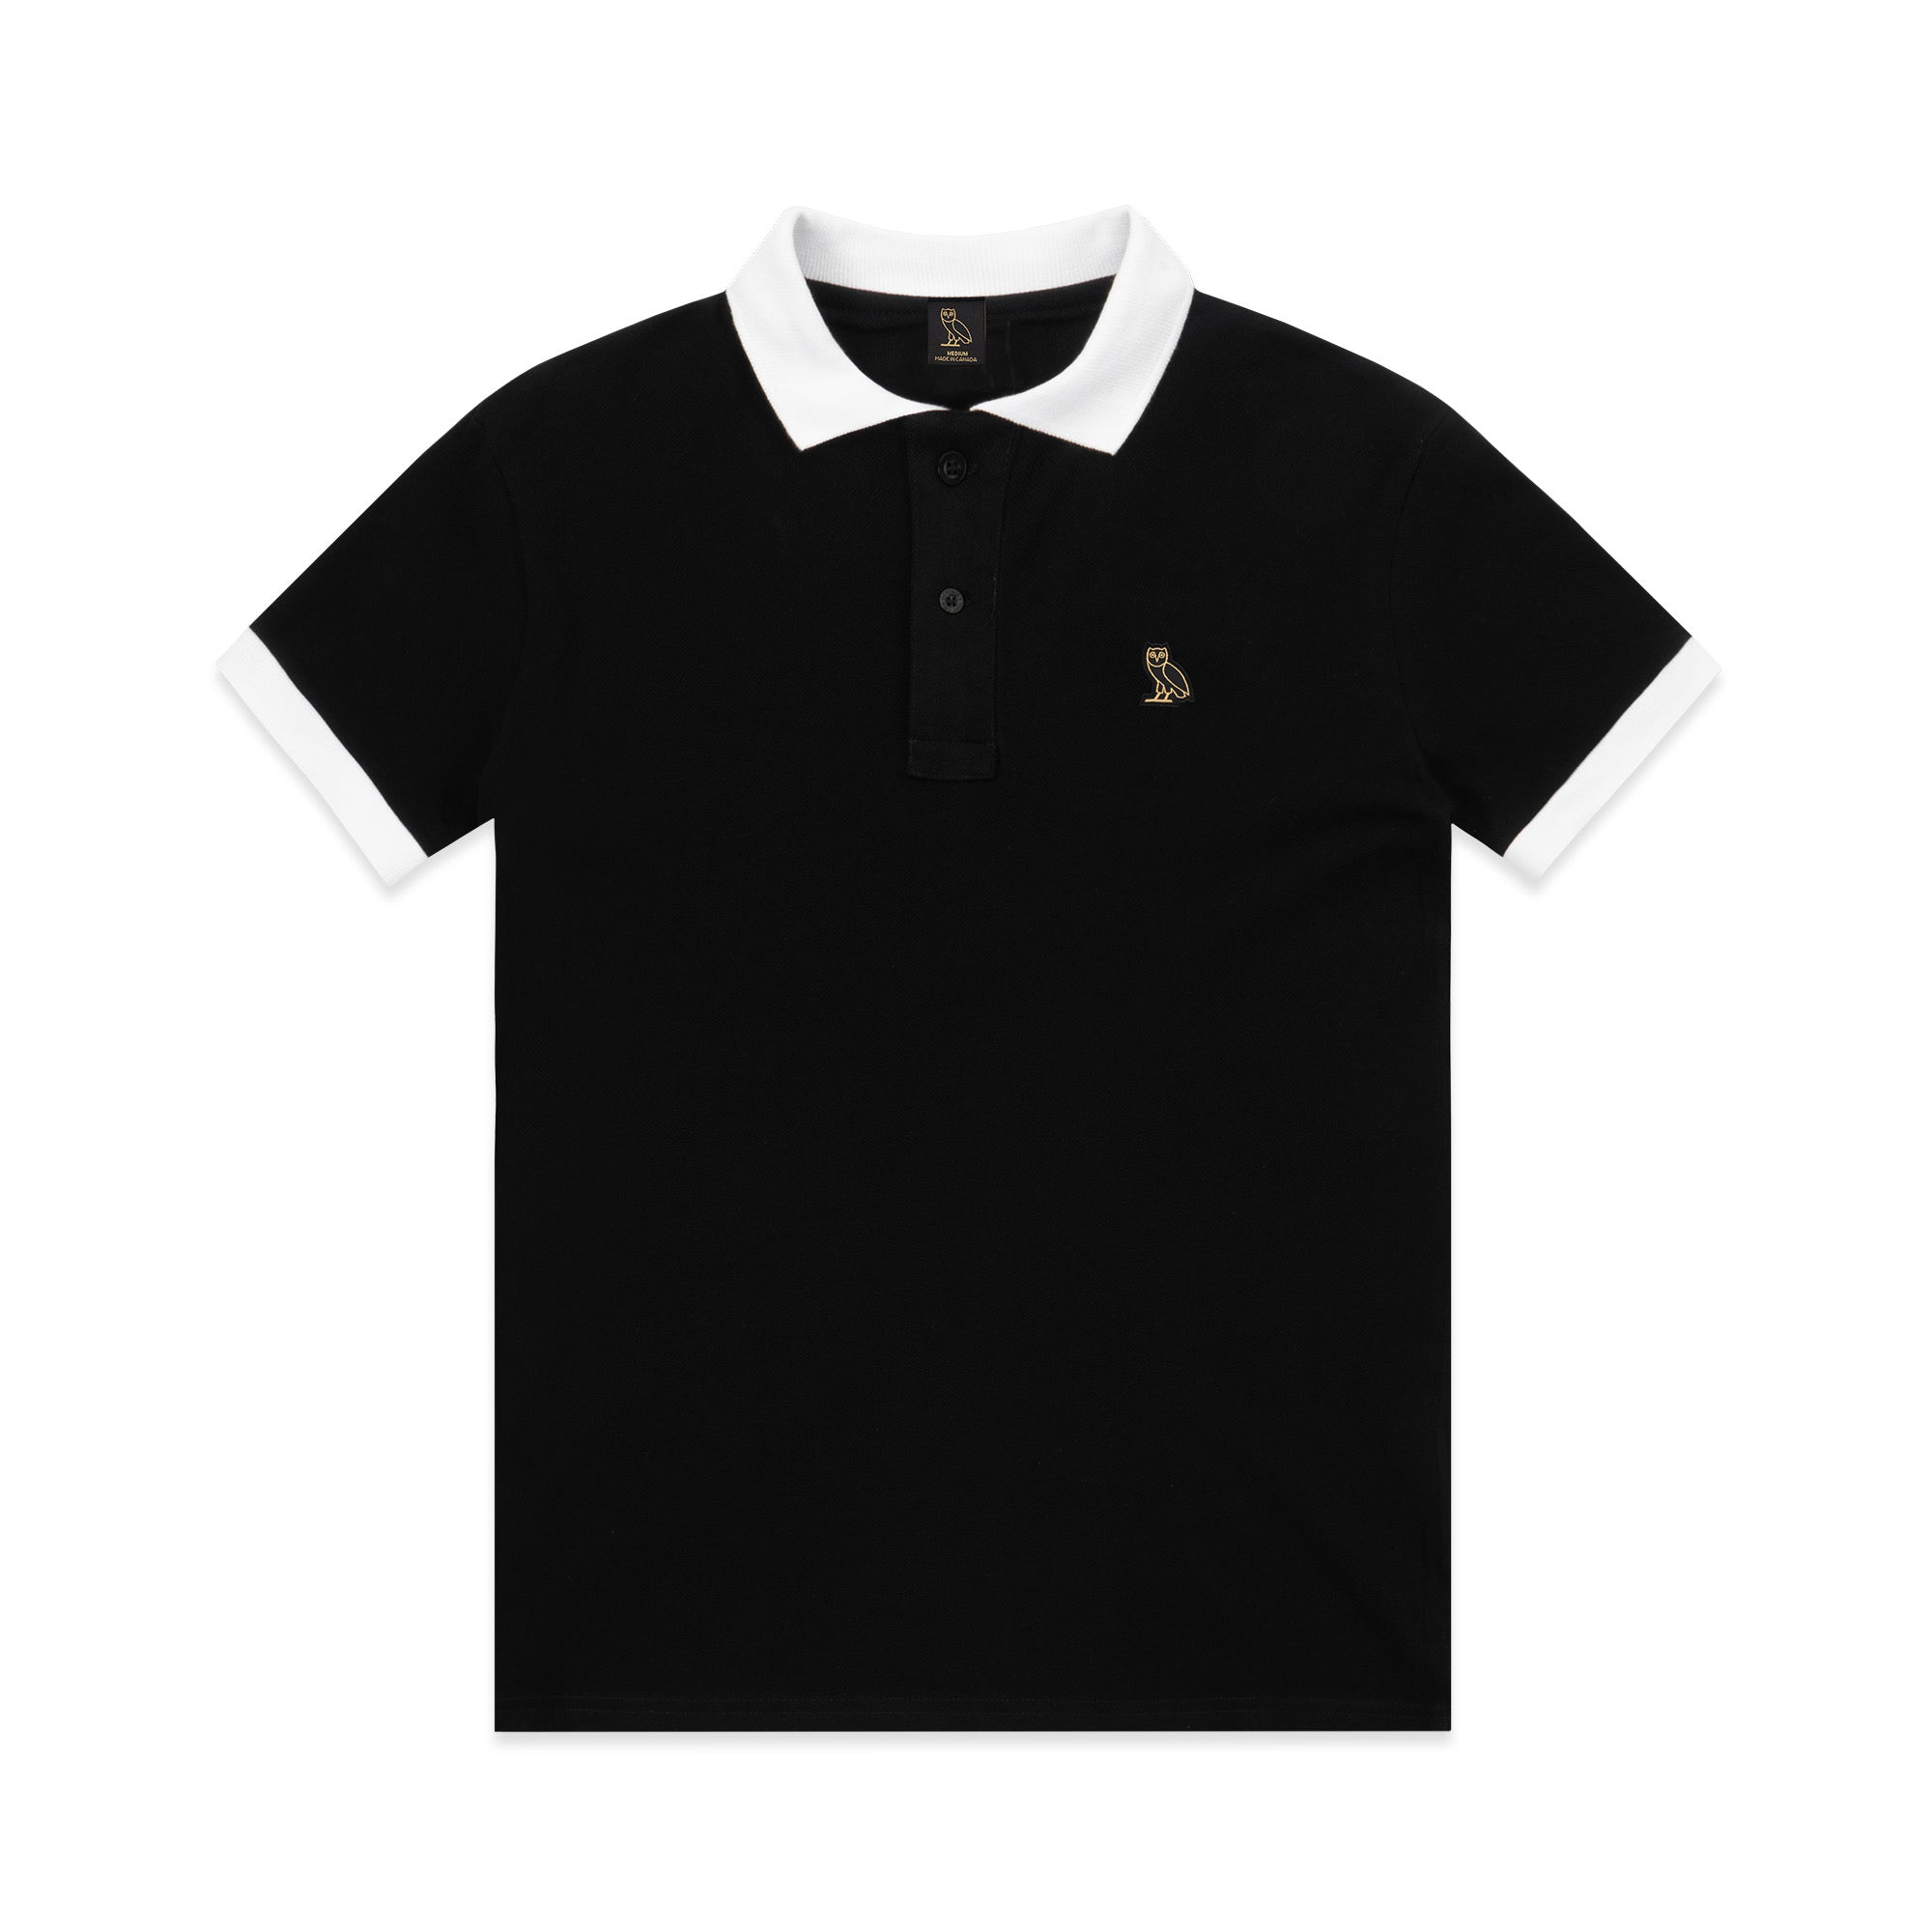 STACKED CLASSIC PATCH POLO - BLACK